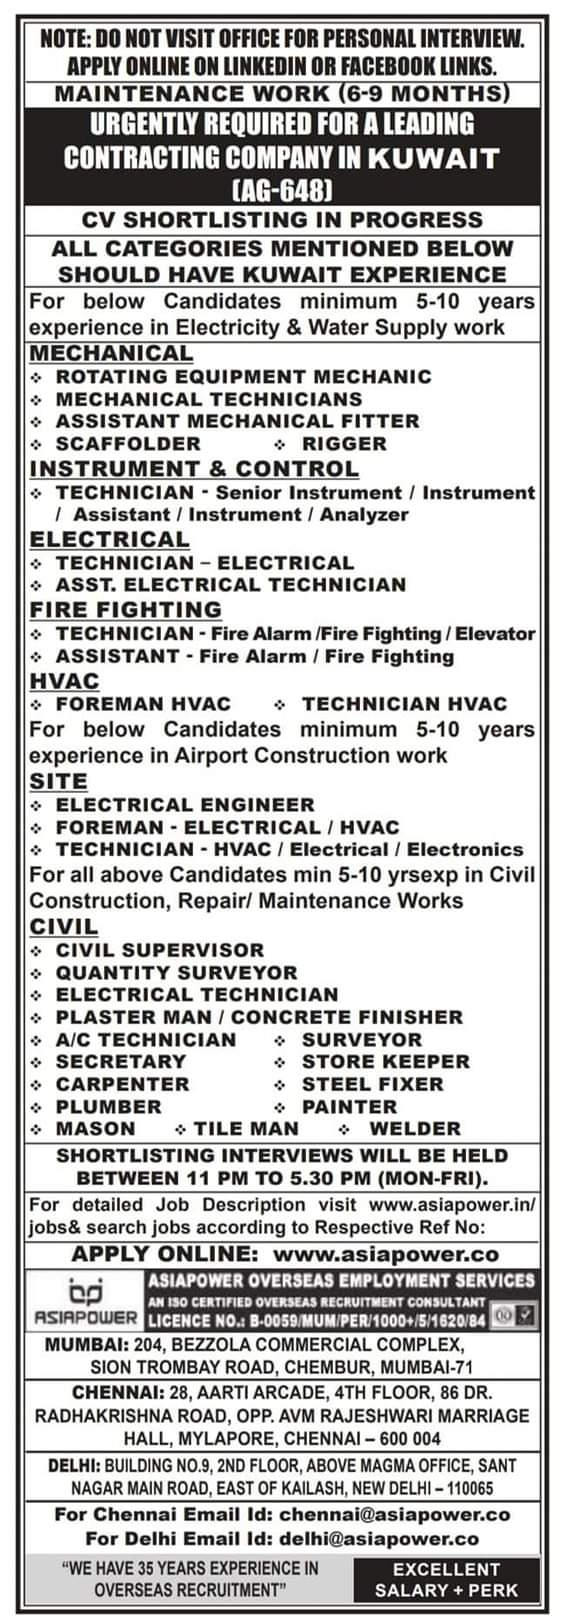 REQUIREMENT FOR KUWAIT